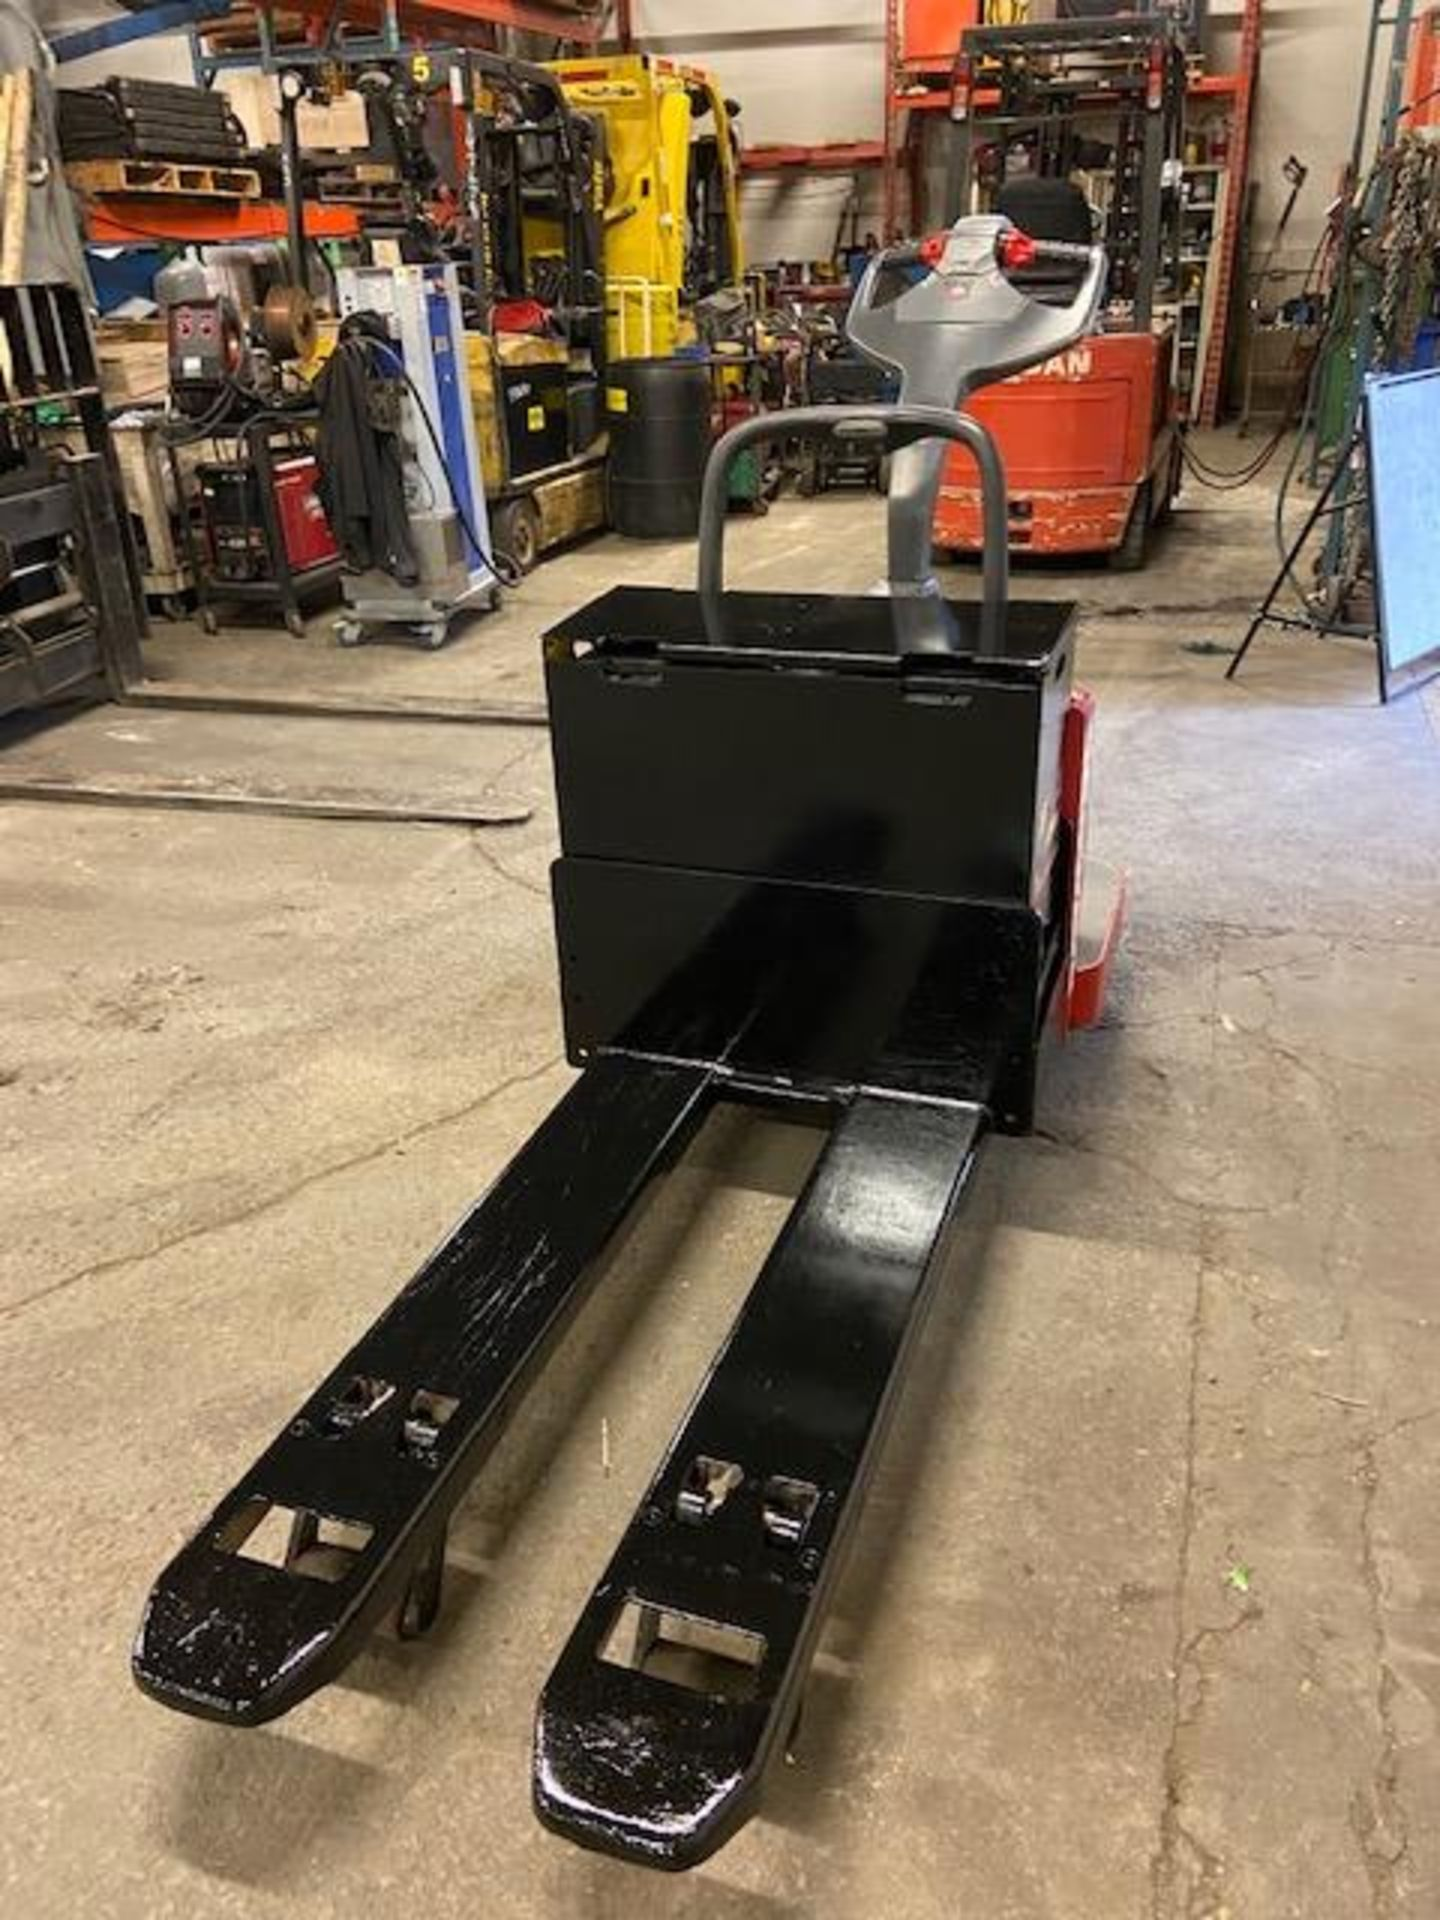 2008 Raymond Electric Ride on Powered Pallet Cart Lift 6000lbs capacity 4' Long with LOW HOURS - Image 2 of 2